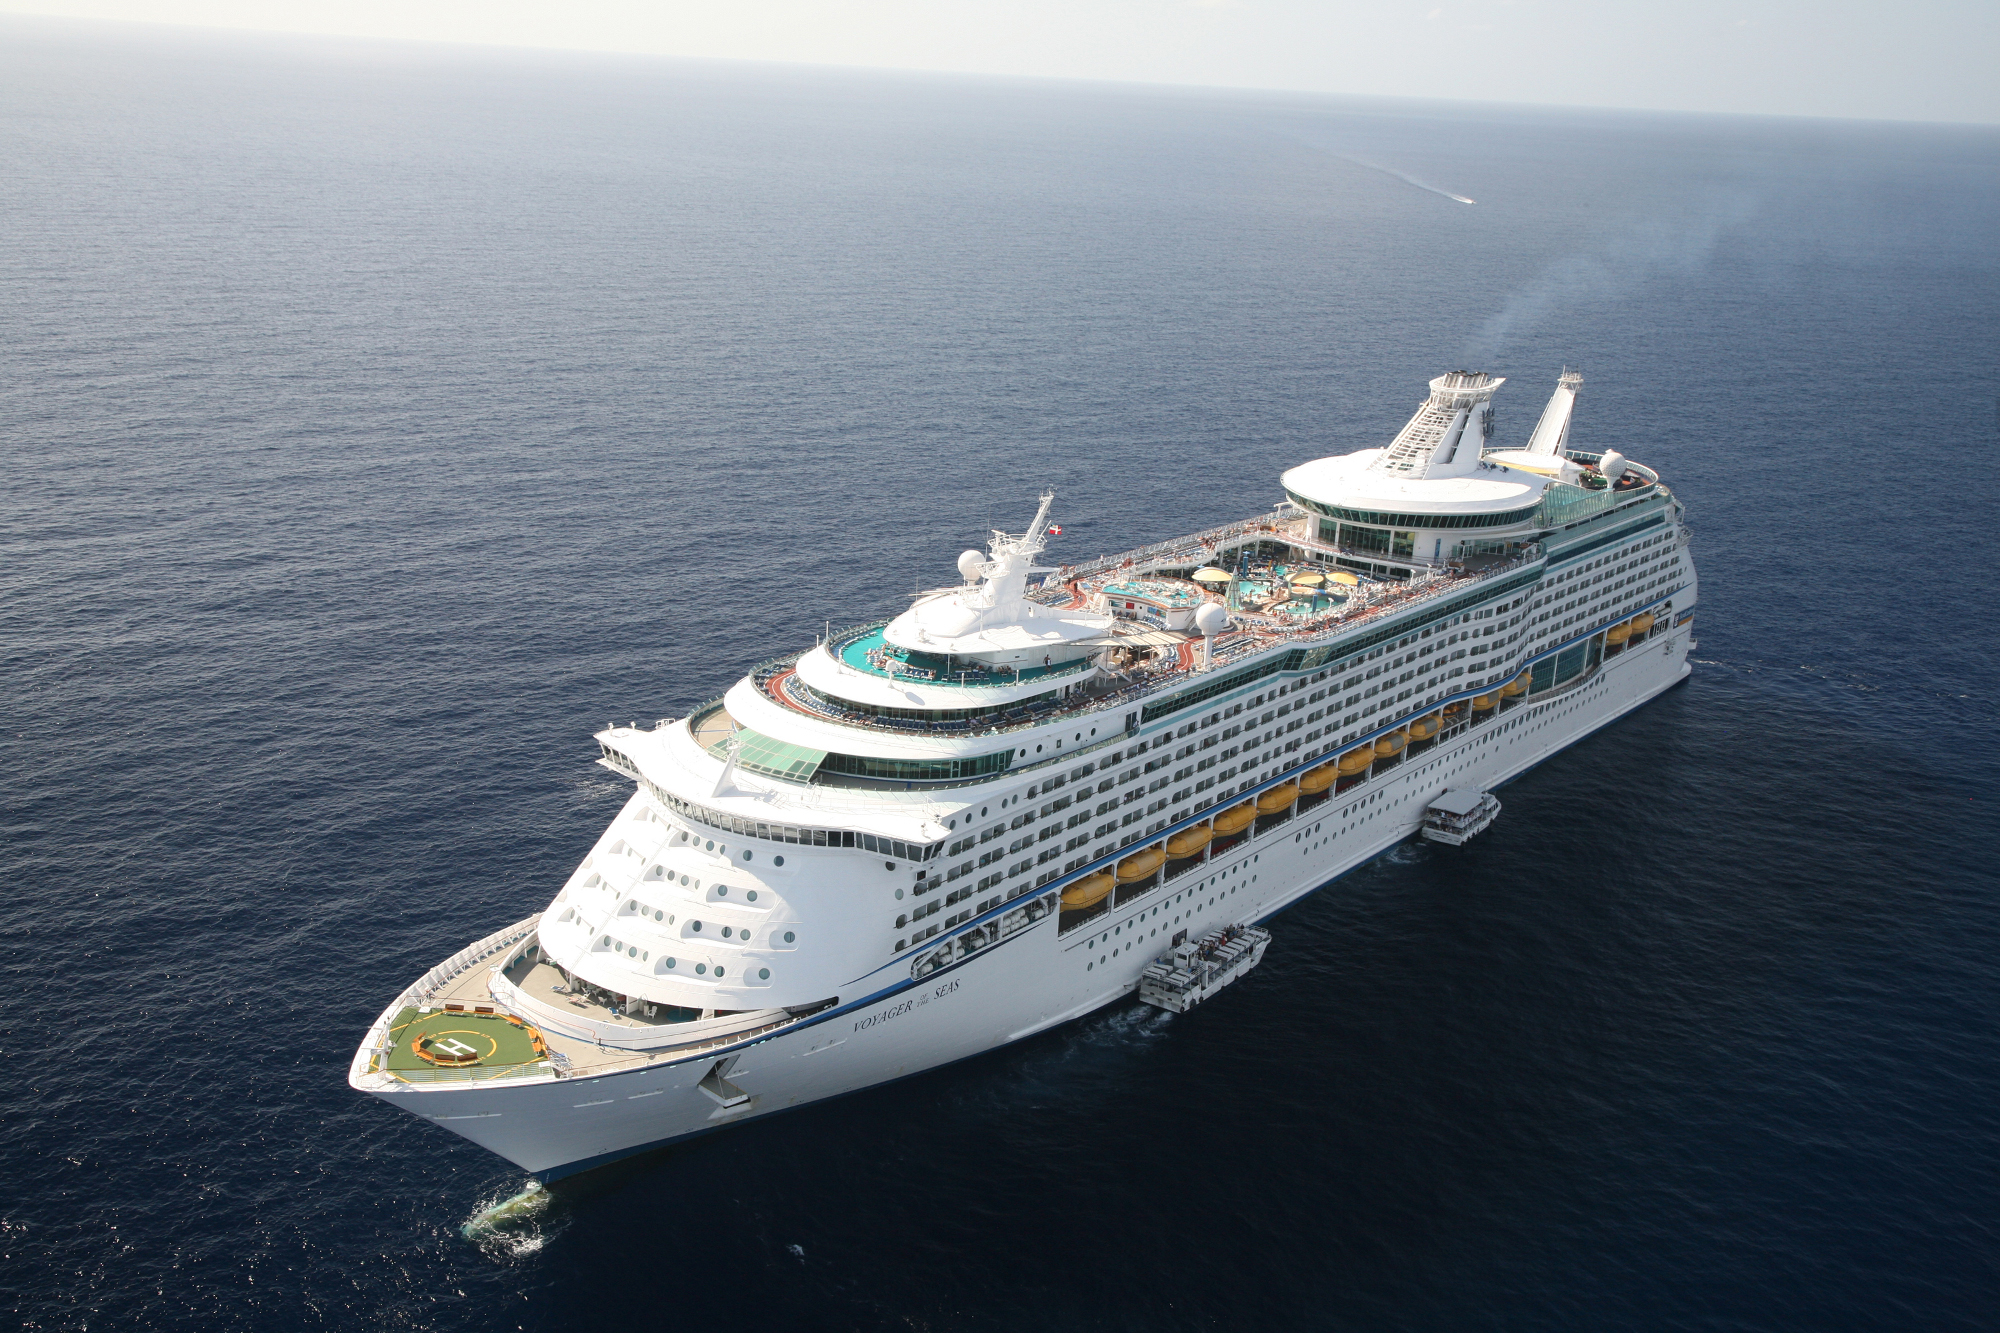 royal-caribbean-international-schiff-vogelperspektive